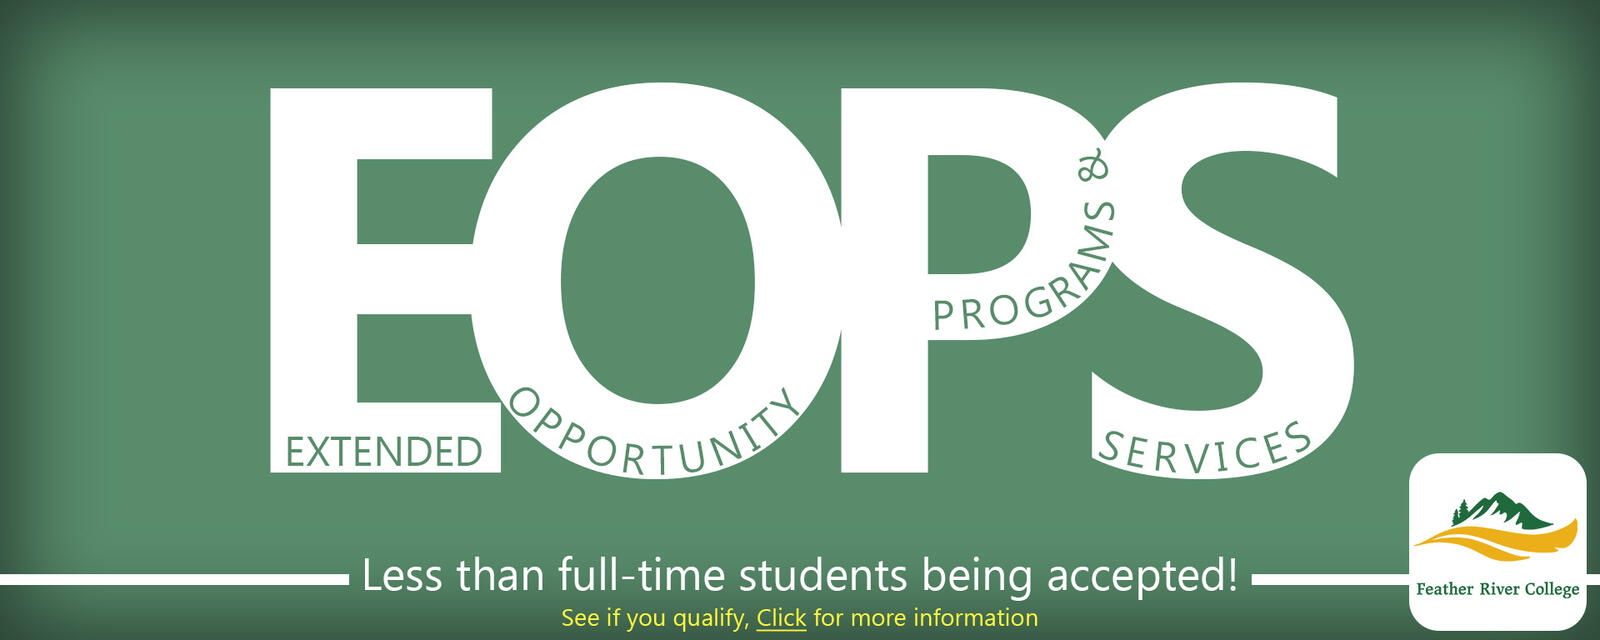 EOPS, extended opportunity programs and services. Application still being accepted